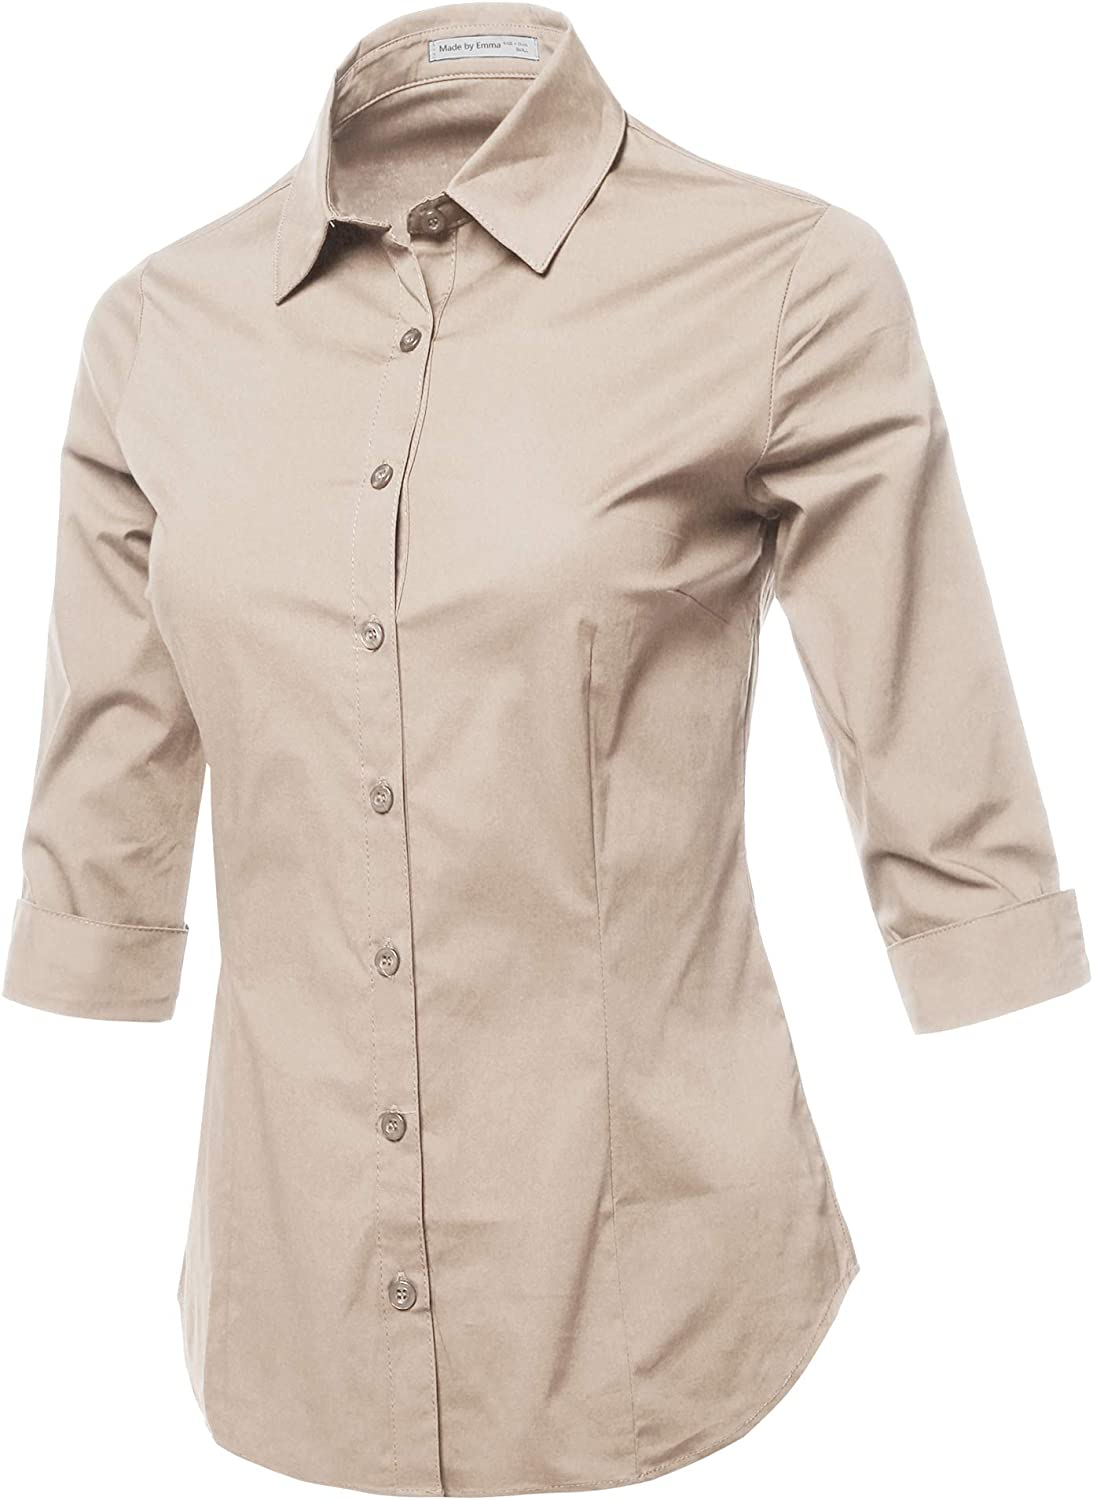 Made by Emma Women's Casual Work Basic Solid Stretch Popline 3/4 Sleeve Button Down Shirt Blouse